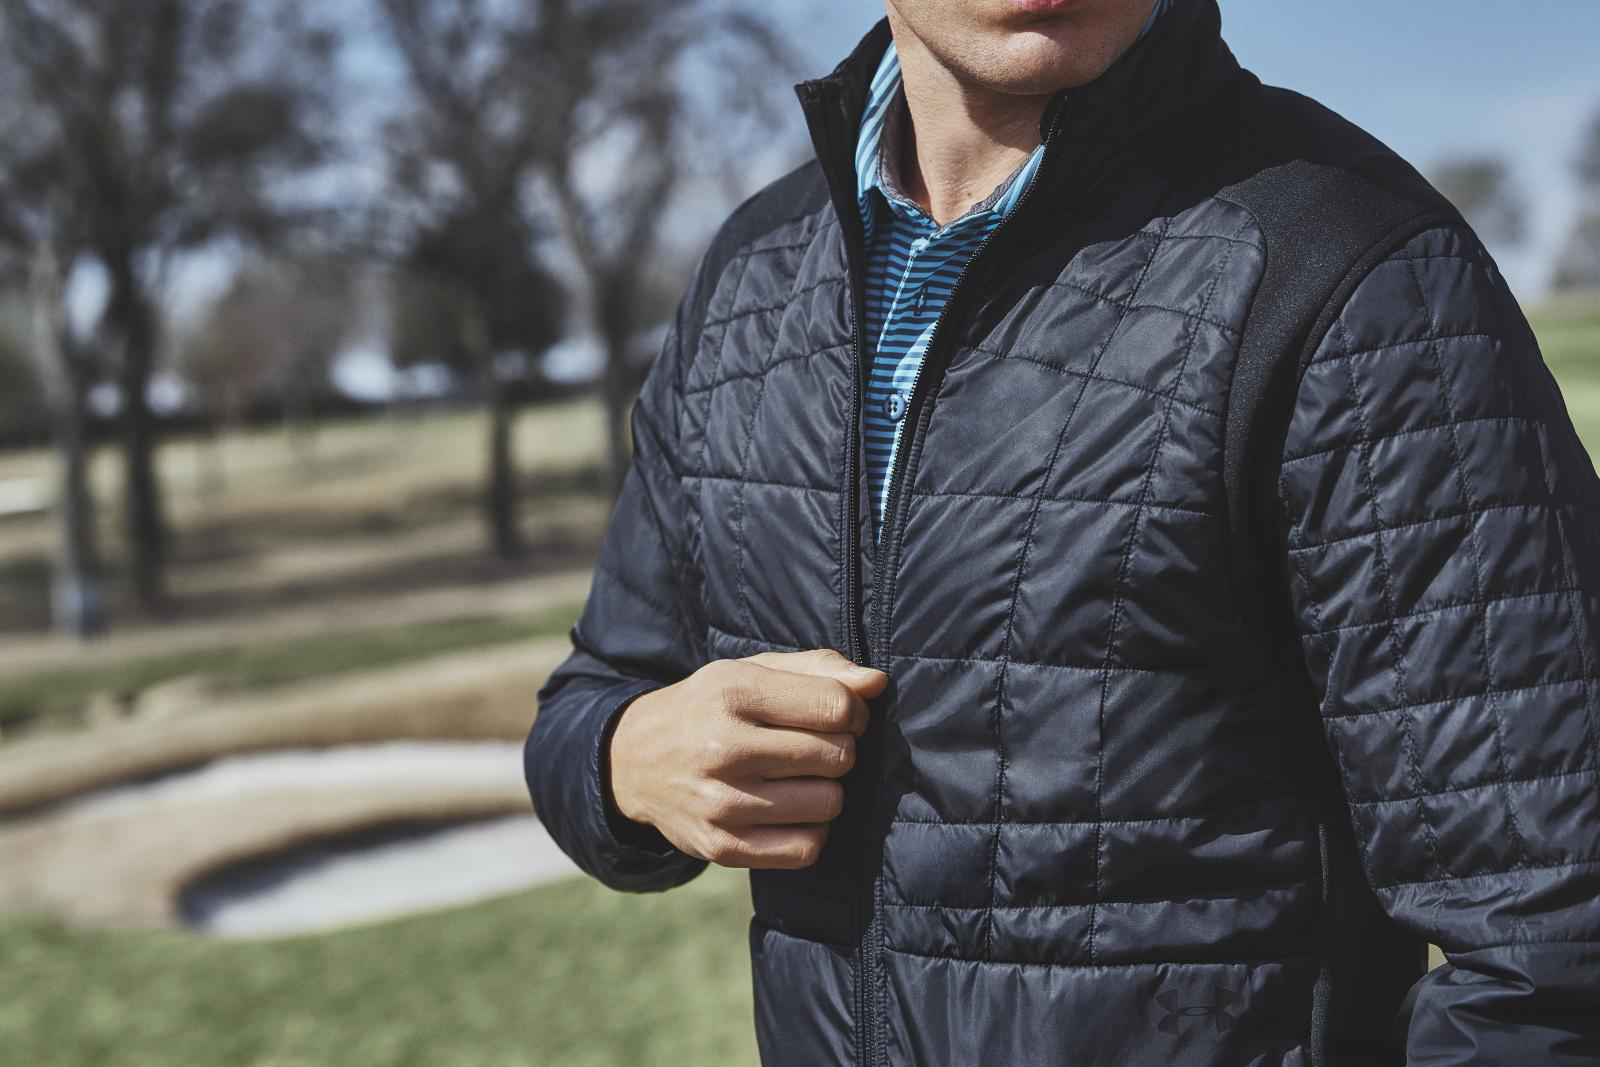 UA Storm Insulated Jacket, $160